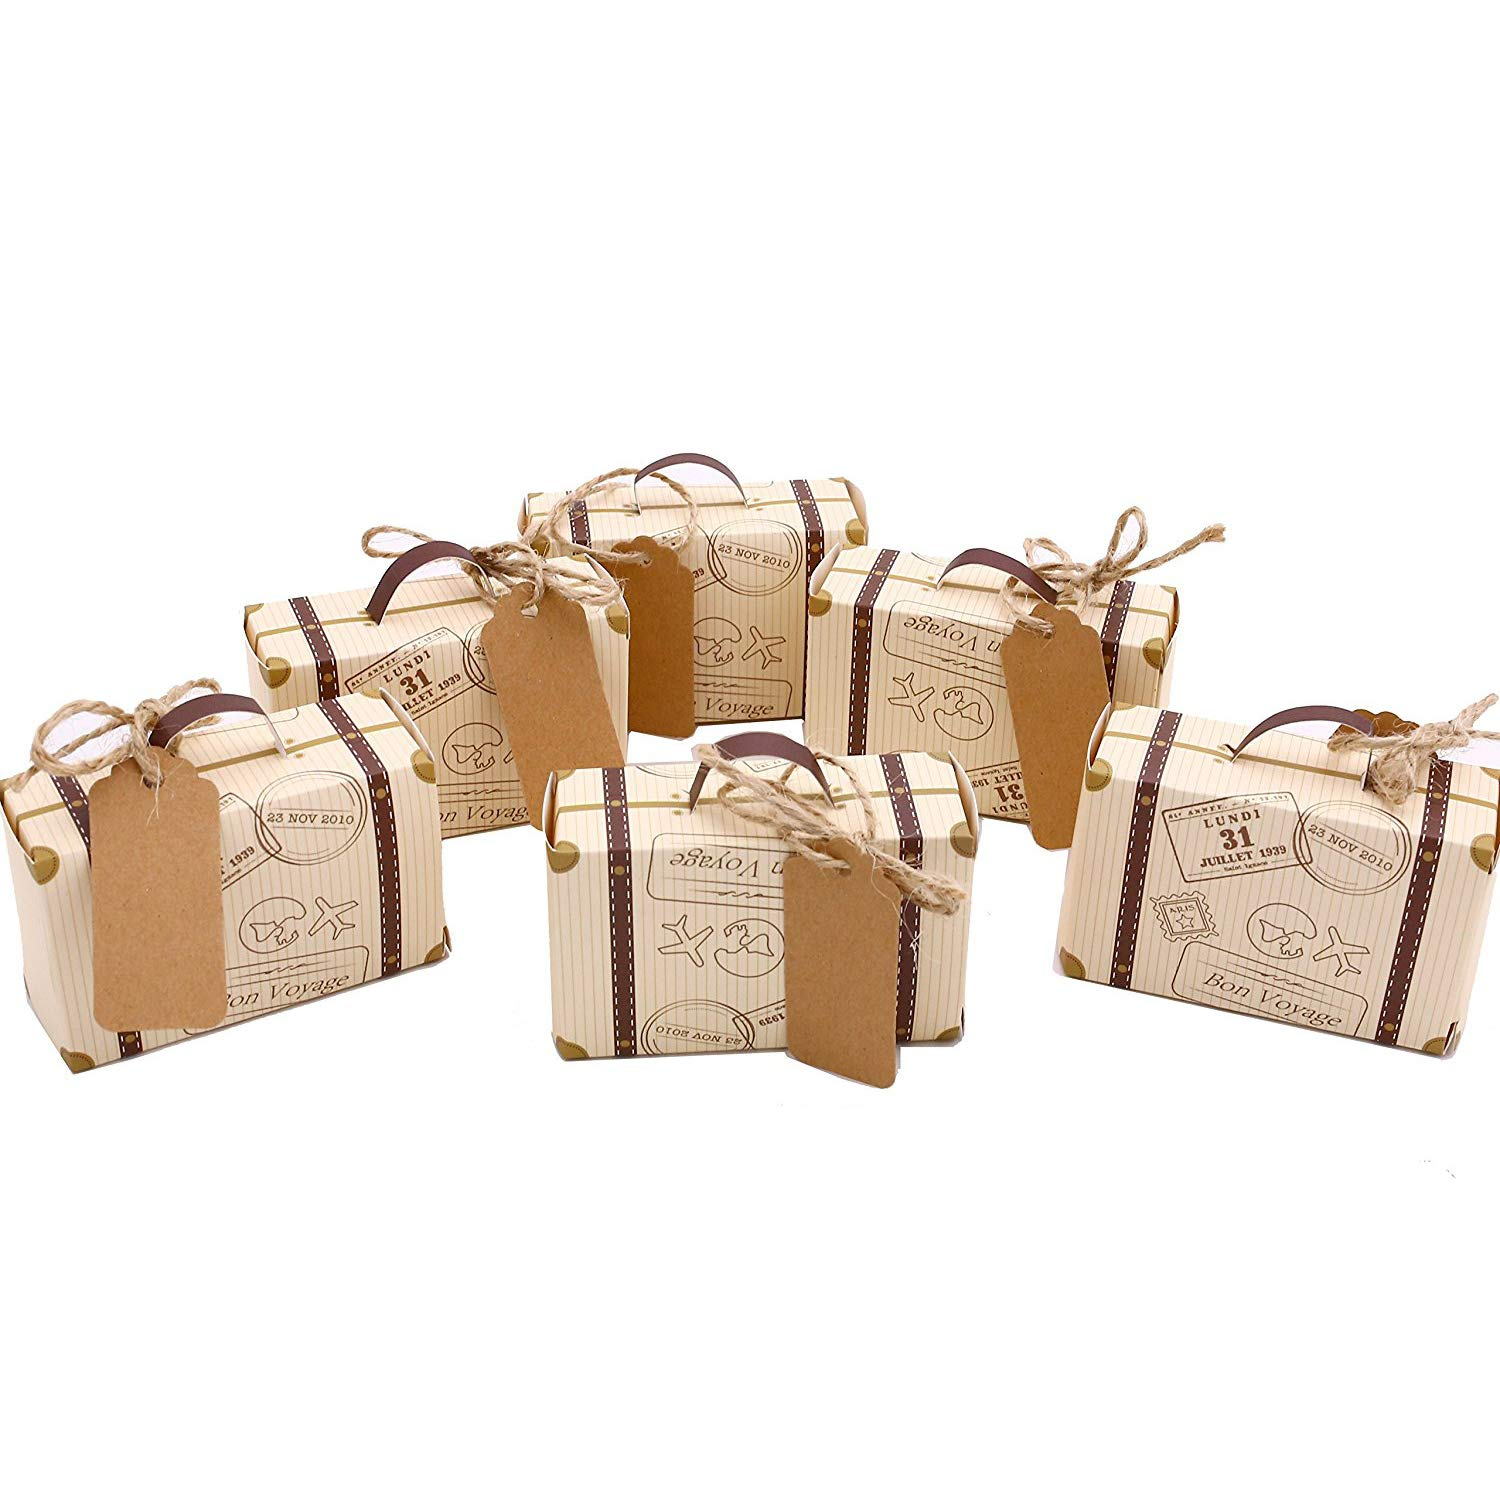 4b6c511b38df VGOODALL 50pcs Mini Suitcase Favor Box Party Favor Candy Box, Vintage Kraft  Paper with Tags and Burlap Twine for Wedding/Travel Themed Party/Bridal ...